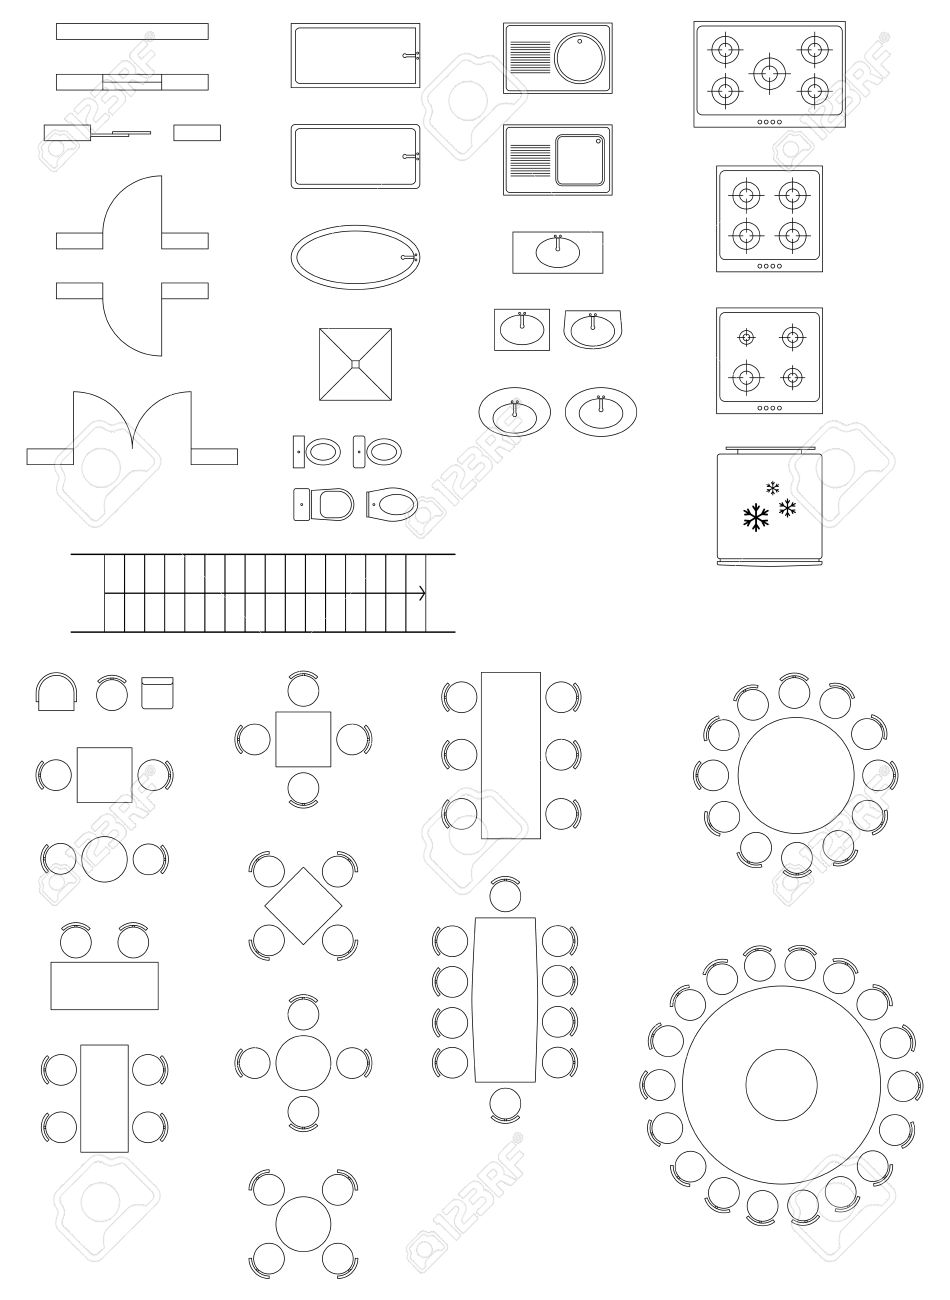 100 symbol for window in floor plan best 10 custom floor symbol for window in floor plan standard symbols used in architecture plans icons set royalty free